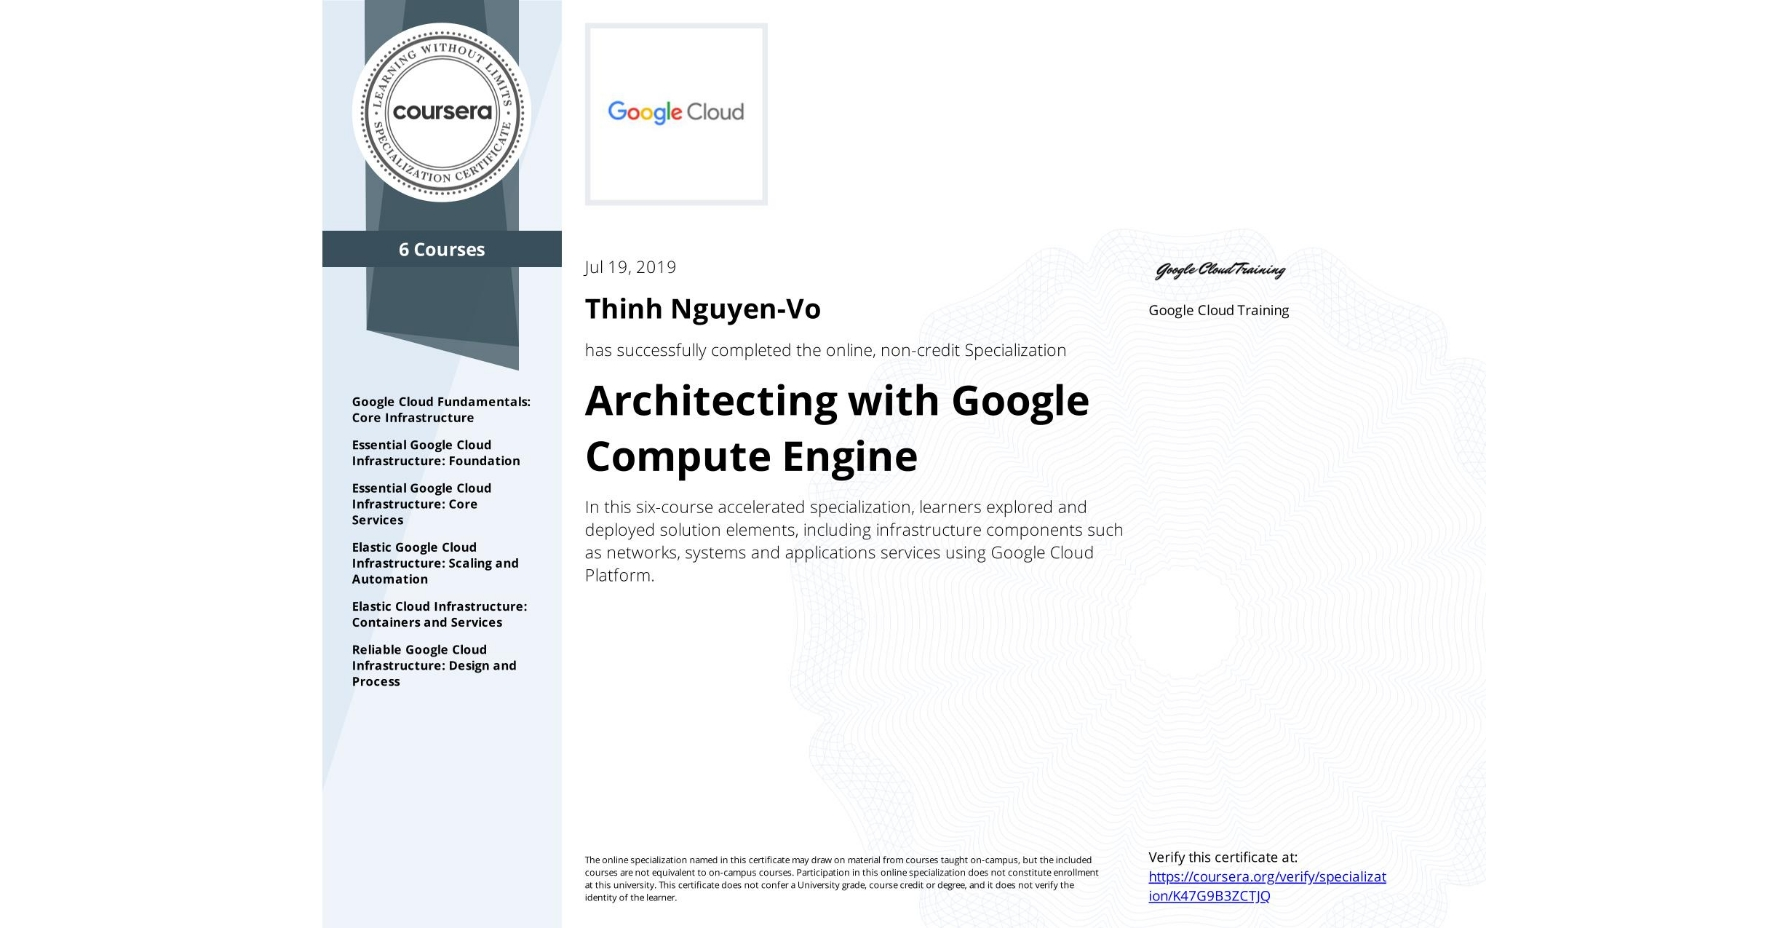 View certificate for Thinh Nguyen-Vo, Architecting with Google Compute Engine, offered through Coursera. In this six-course accelerated specialization, learners explored and deployed solution elements, including infrastructure components such as networks, systems and applications services using Google Cloud Platform.